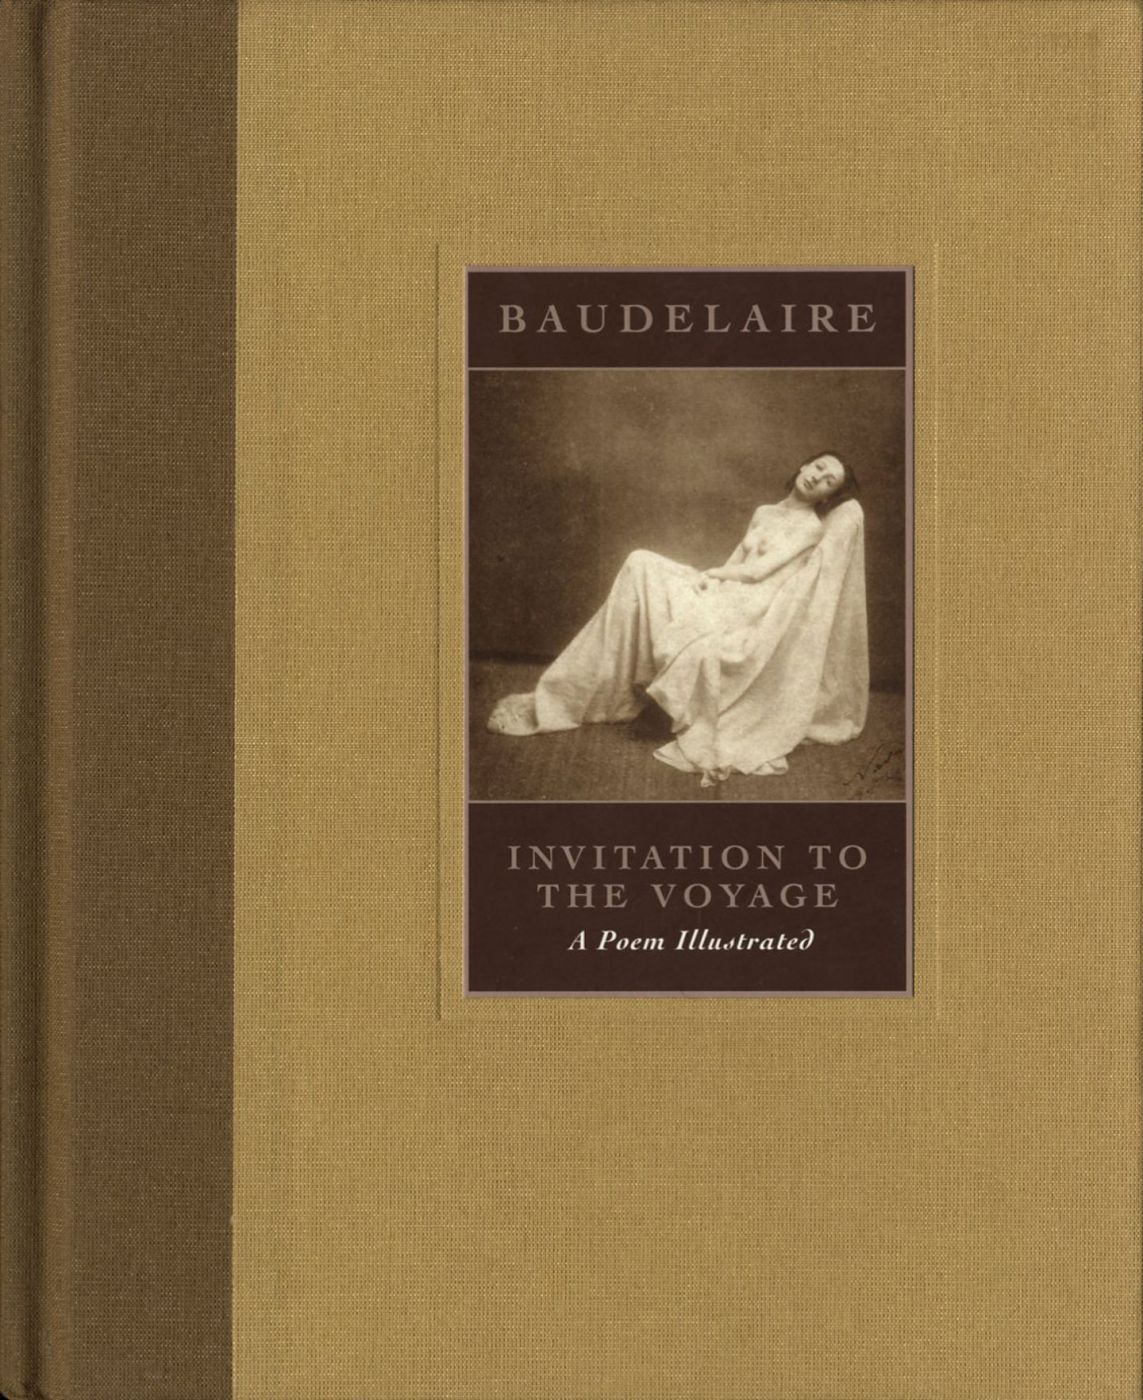 Charles baudelaire linvitation au voyage invitation to the charles baudelaire linvitation au voyage invitation to the voyage stopboris Image collections